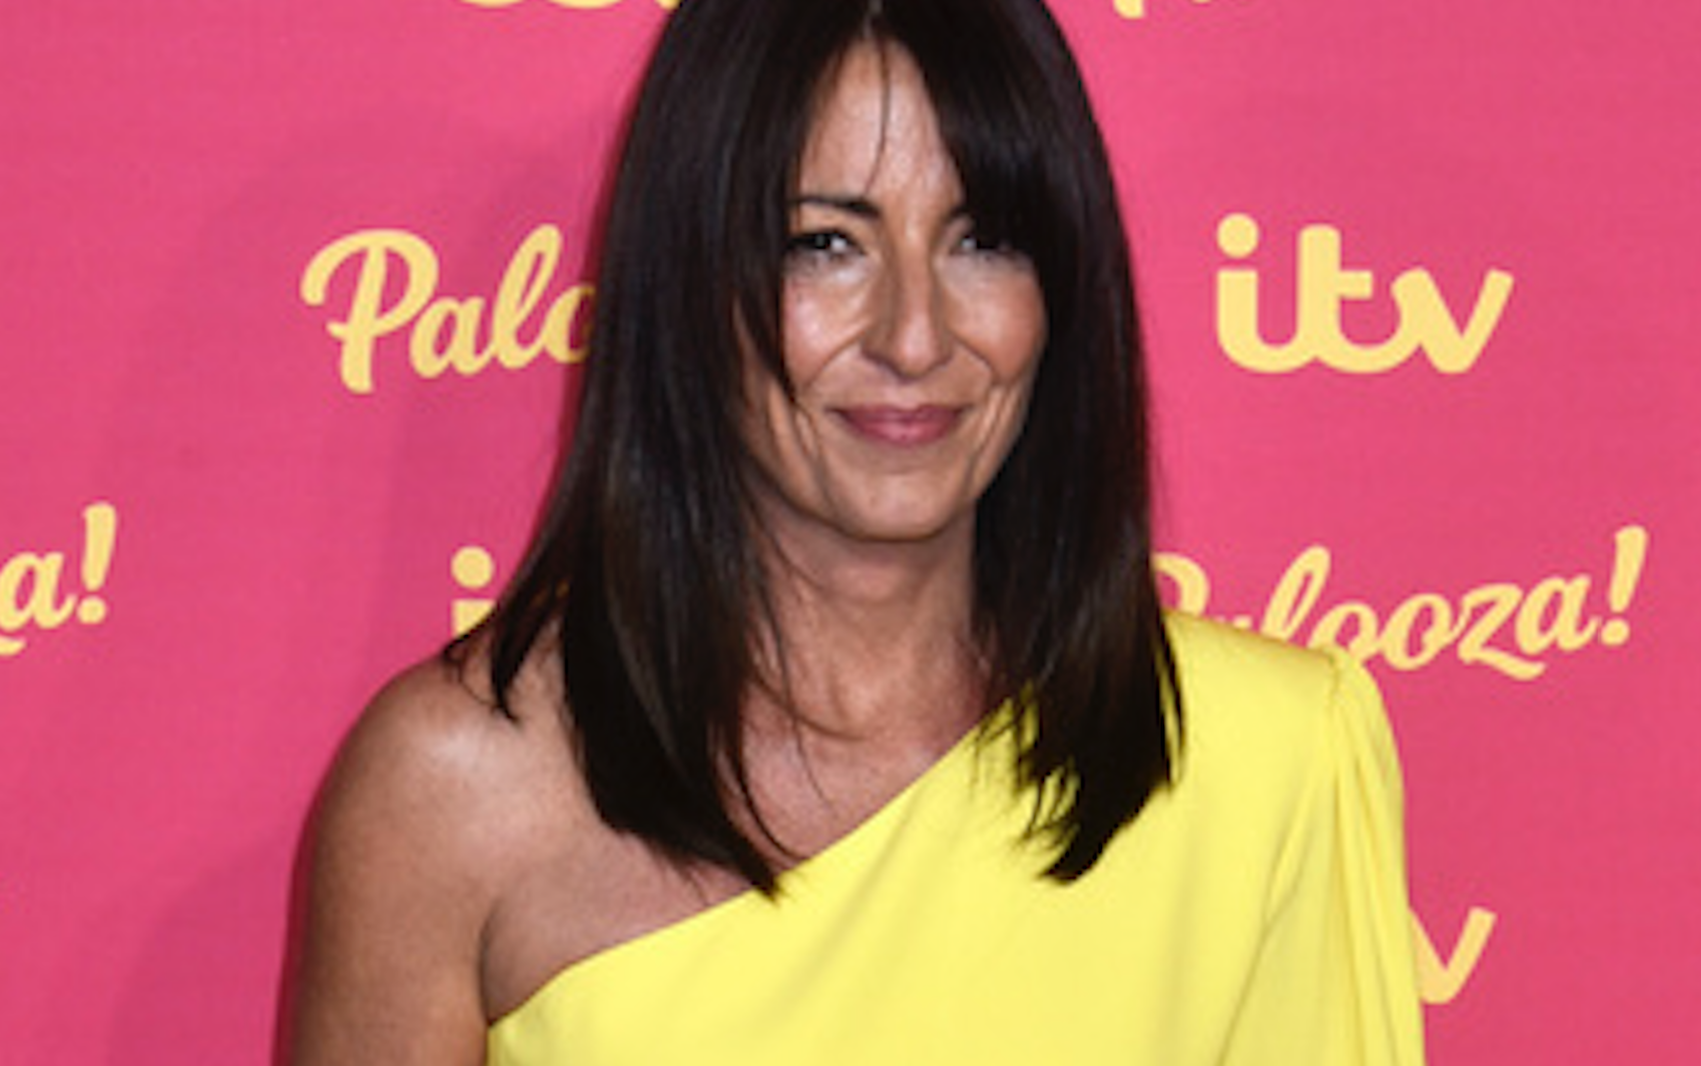 Davina McCall opens up about being hospitalised following drug overdose